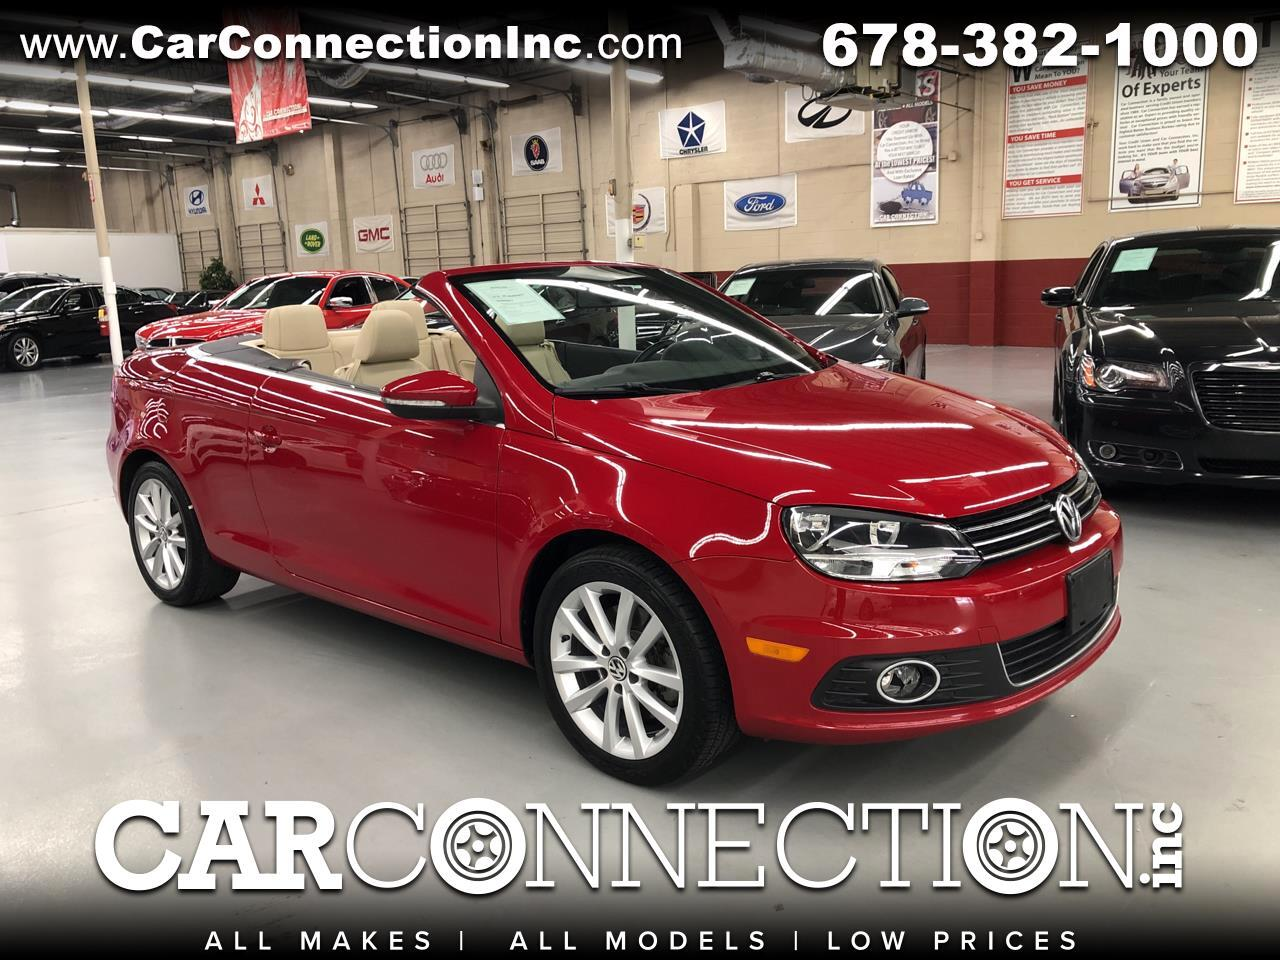 Used 2012 Volkswagen Eos for Sale in Tucker, GA 30084 Car